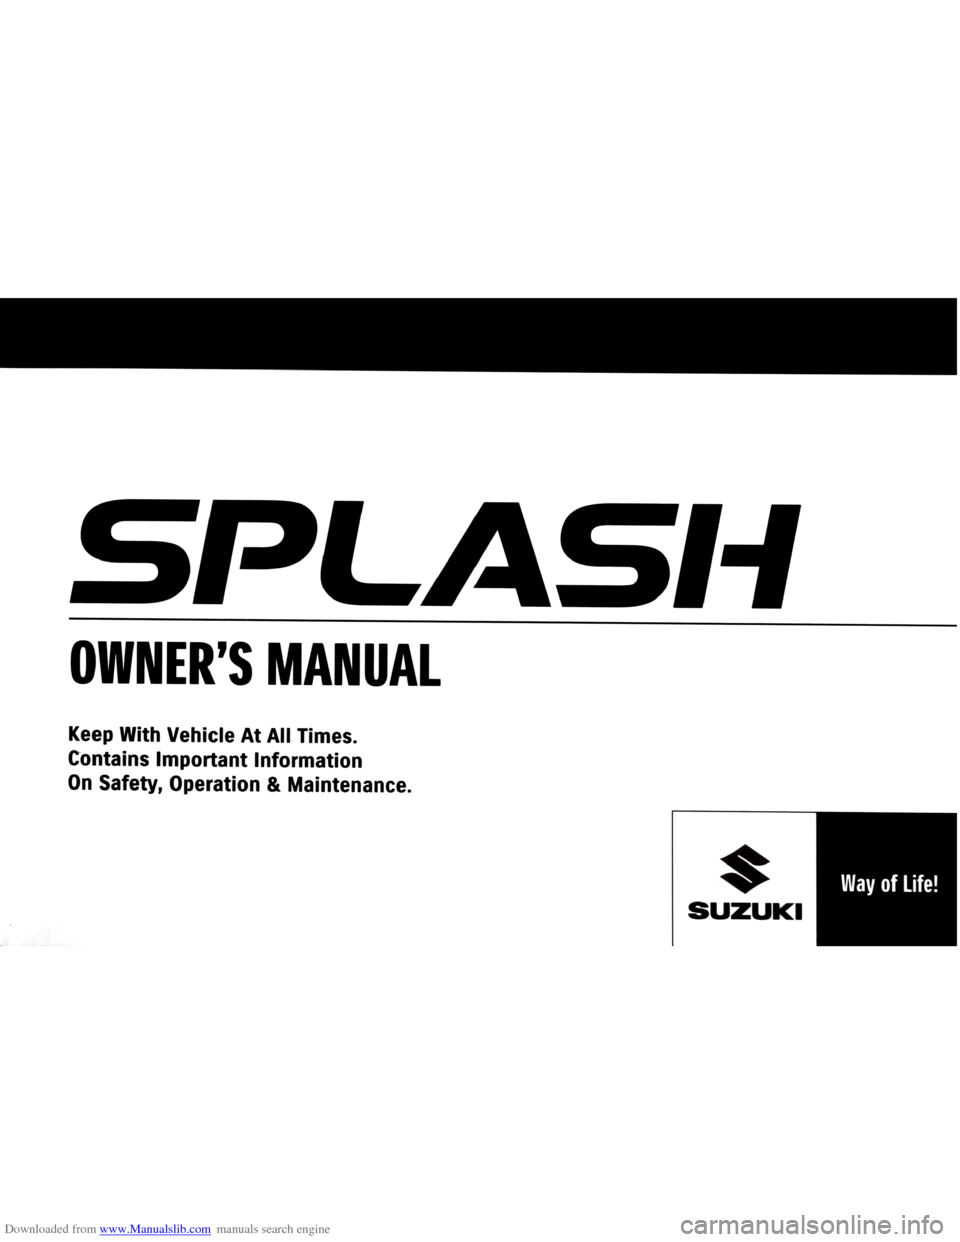 SUZUKI SPLASH 2005 1.G User Guide (14 Pages)